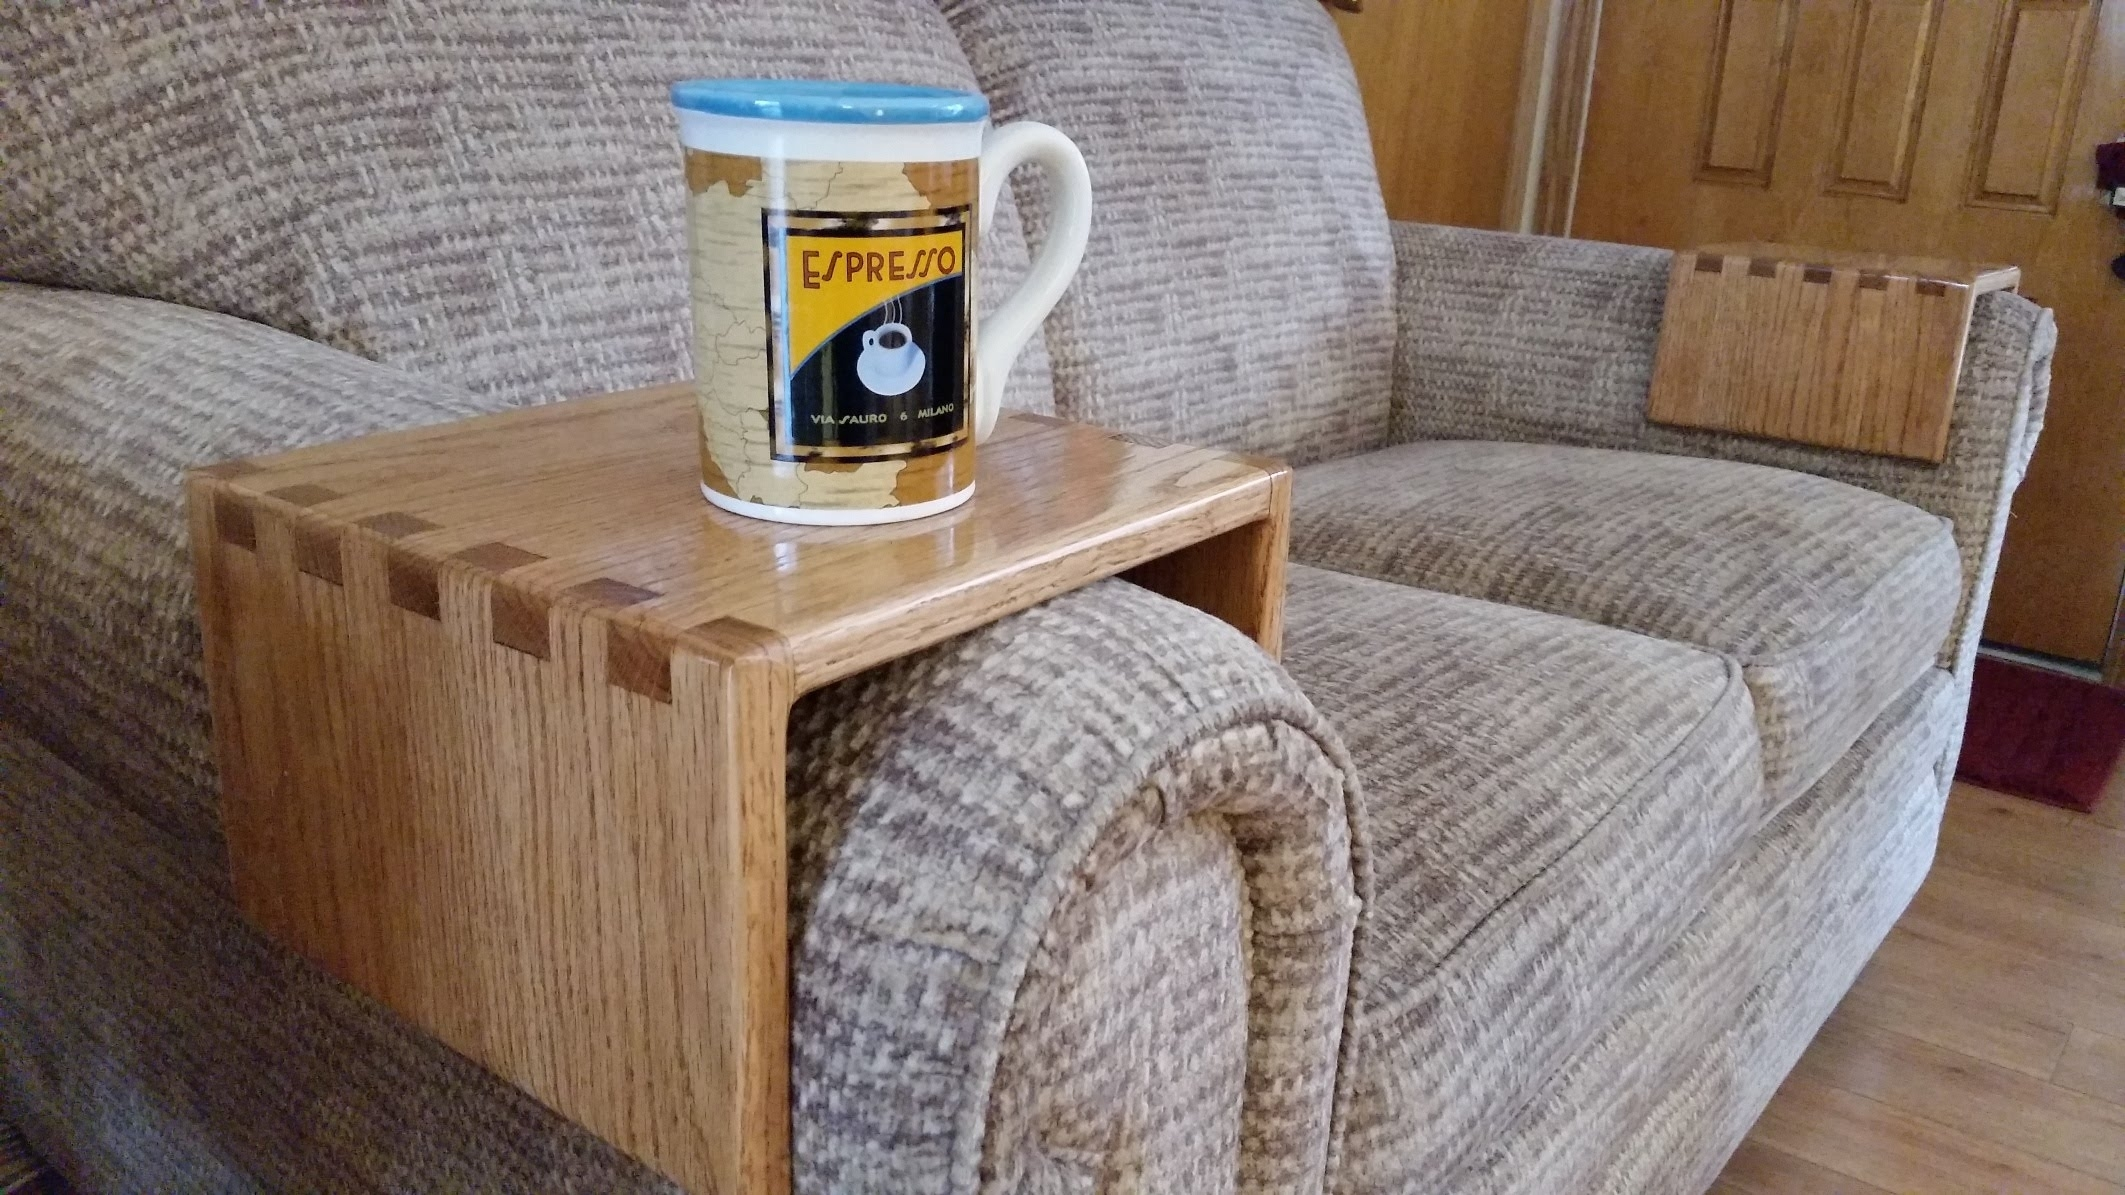 Diy – Sofa Drink Holder Using Simple Box Joints – Youtube With Regard To Sofas With Drink Tables (View 3 of 10)